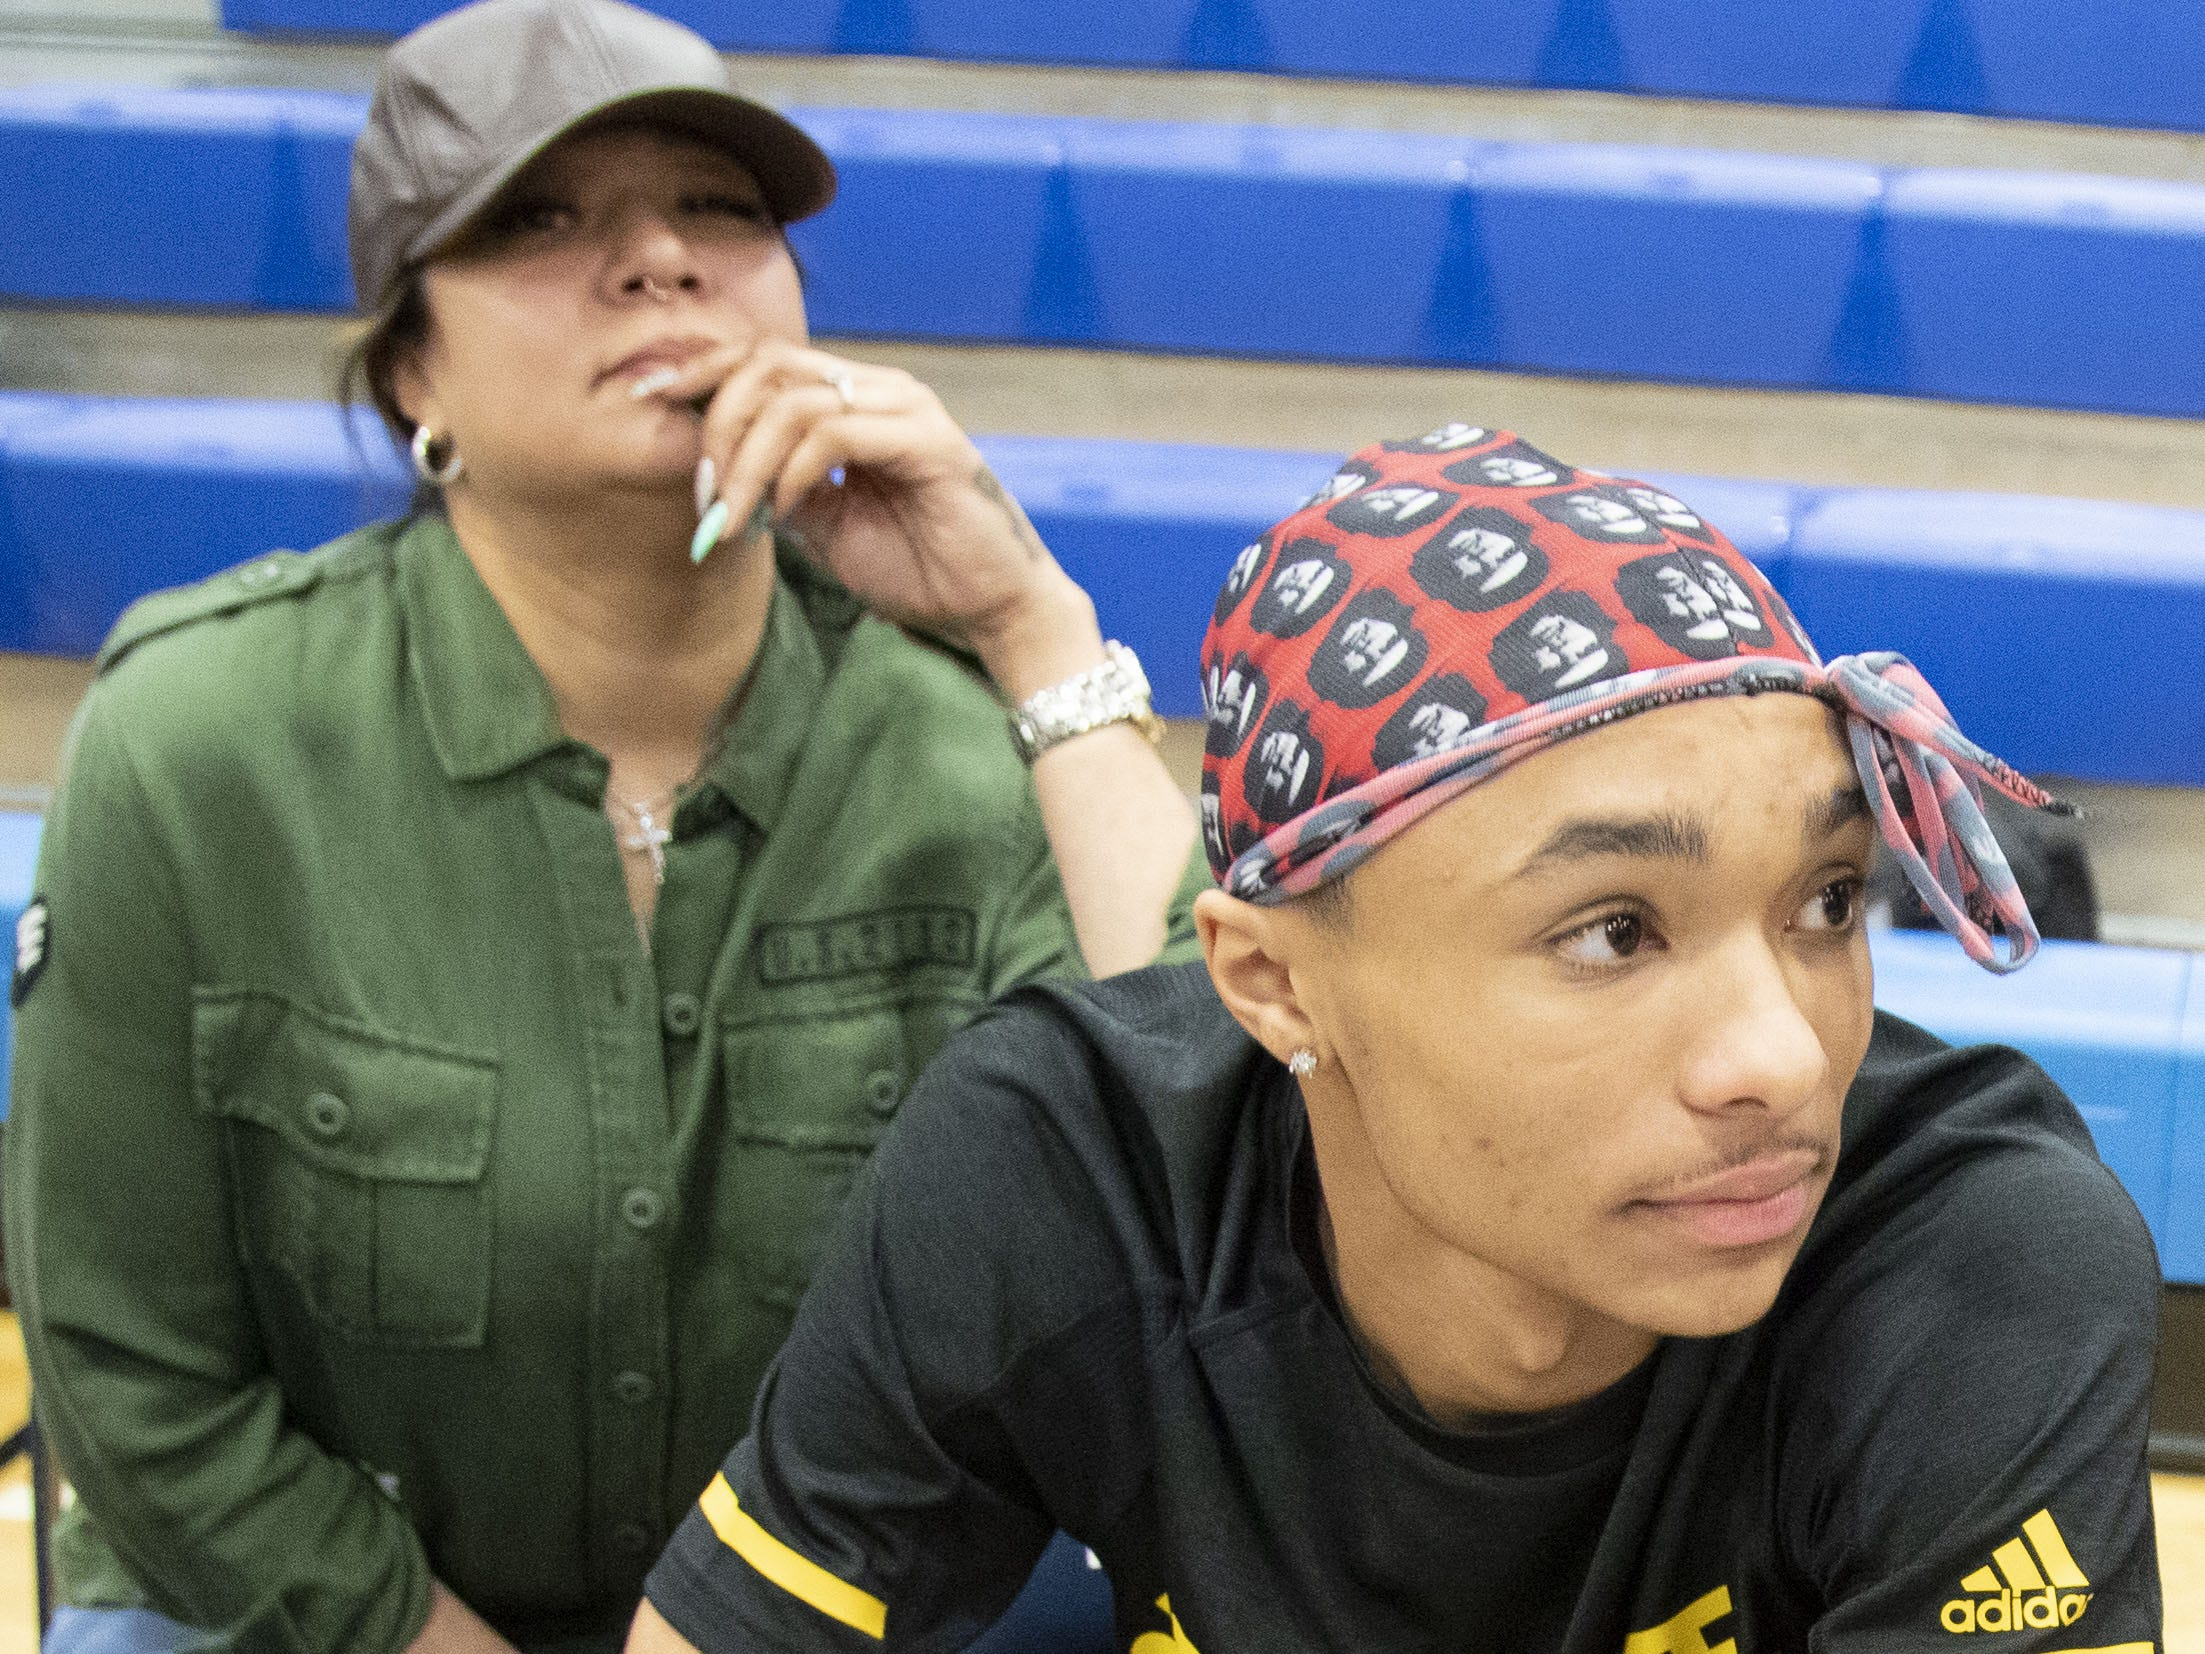 Shadow Mountain's Jaelen House and his mother Charlsie Bibby during a signing ceremony at the school gym on Nov. 14, 2018. Jaelen House signs with Arizona State.